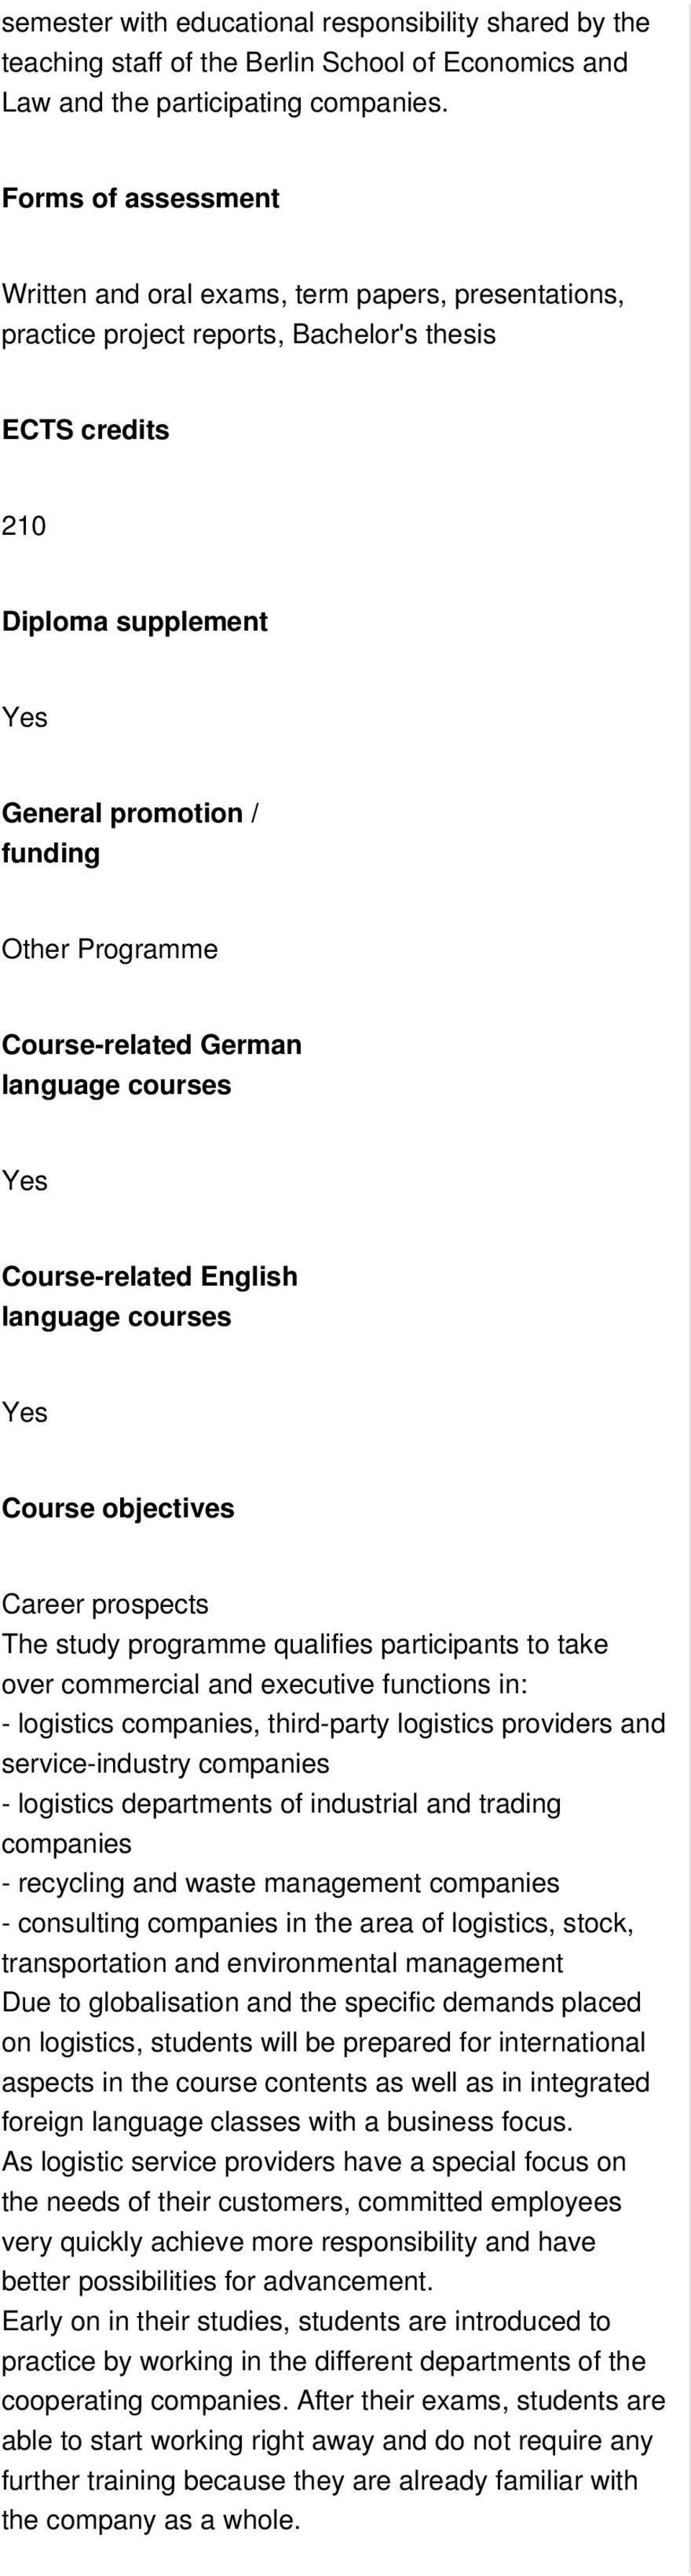 Course-related German language courses Yes Course-related English language courses Yes Course objectives Career prospects The study programme qualifies participants to take over commercial and